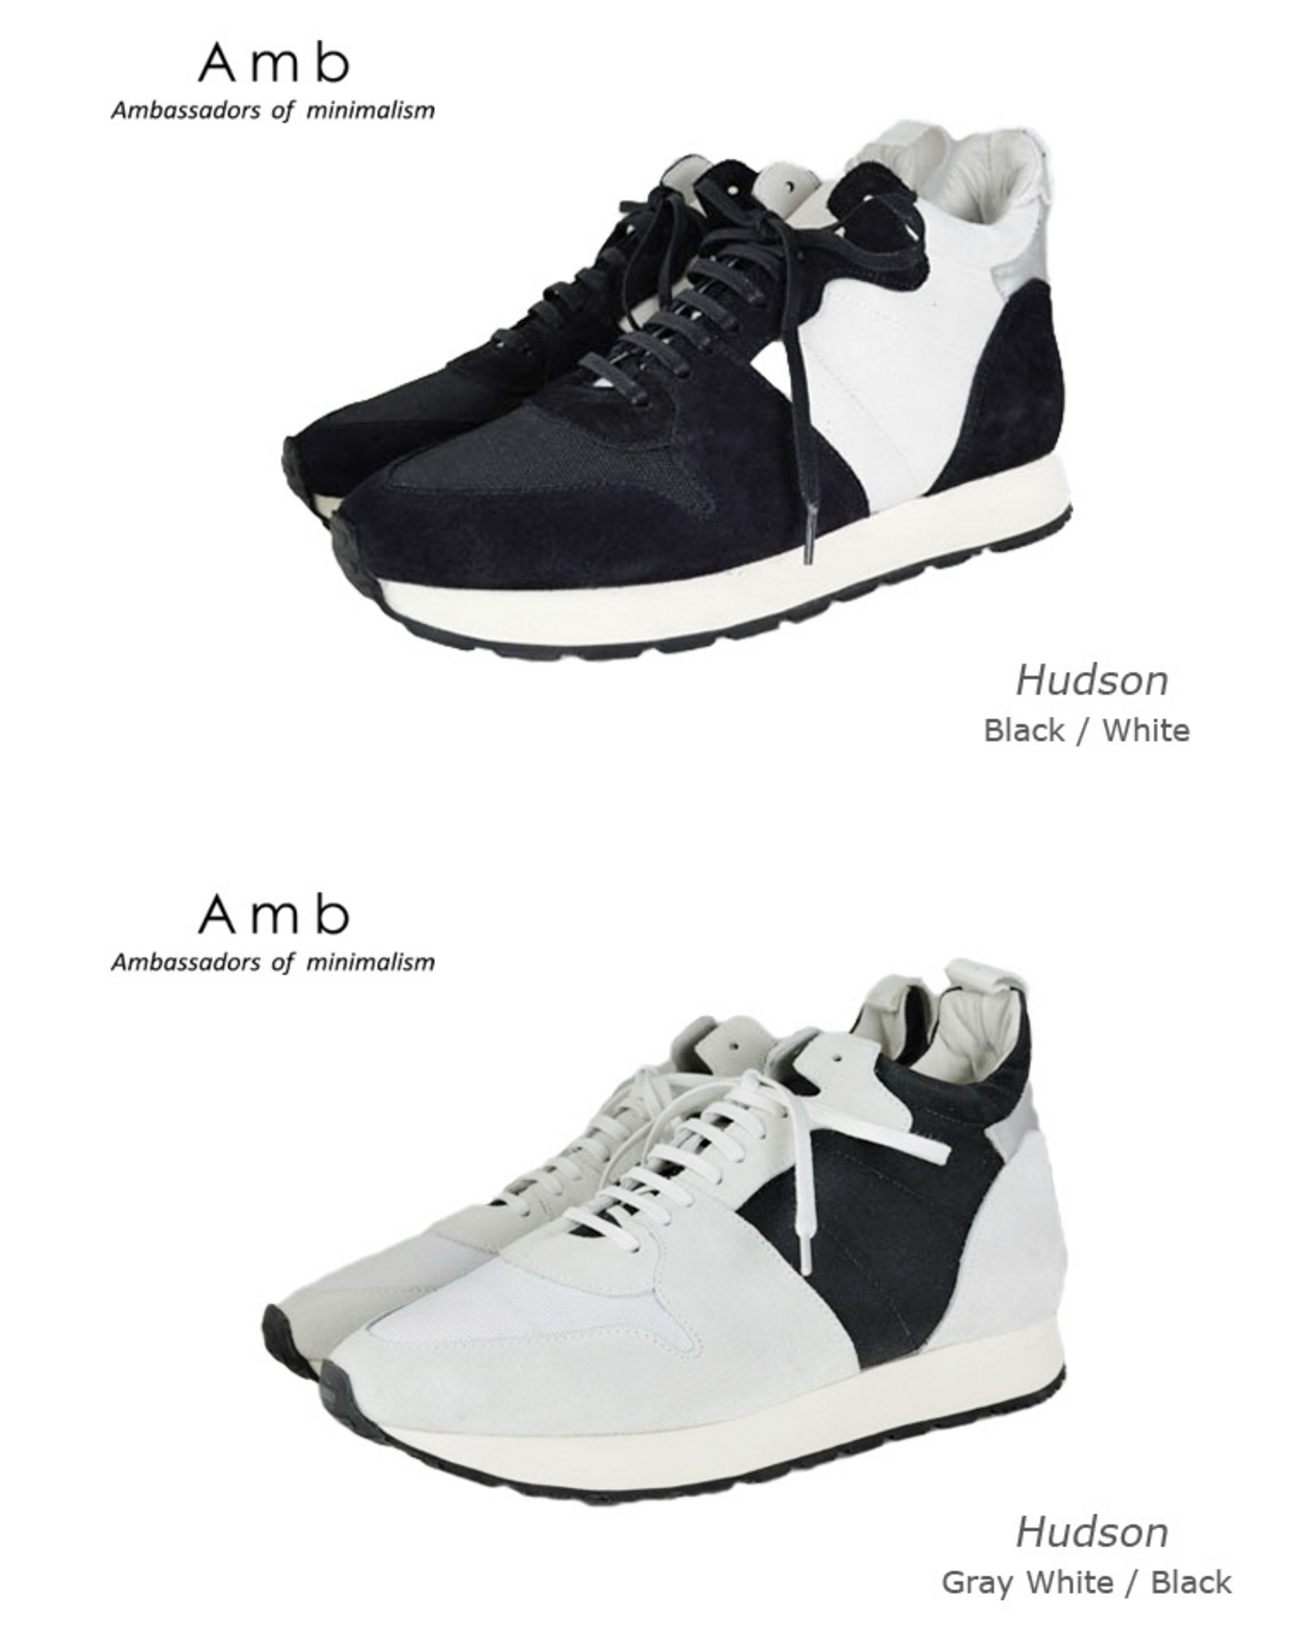 amb shoes 2